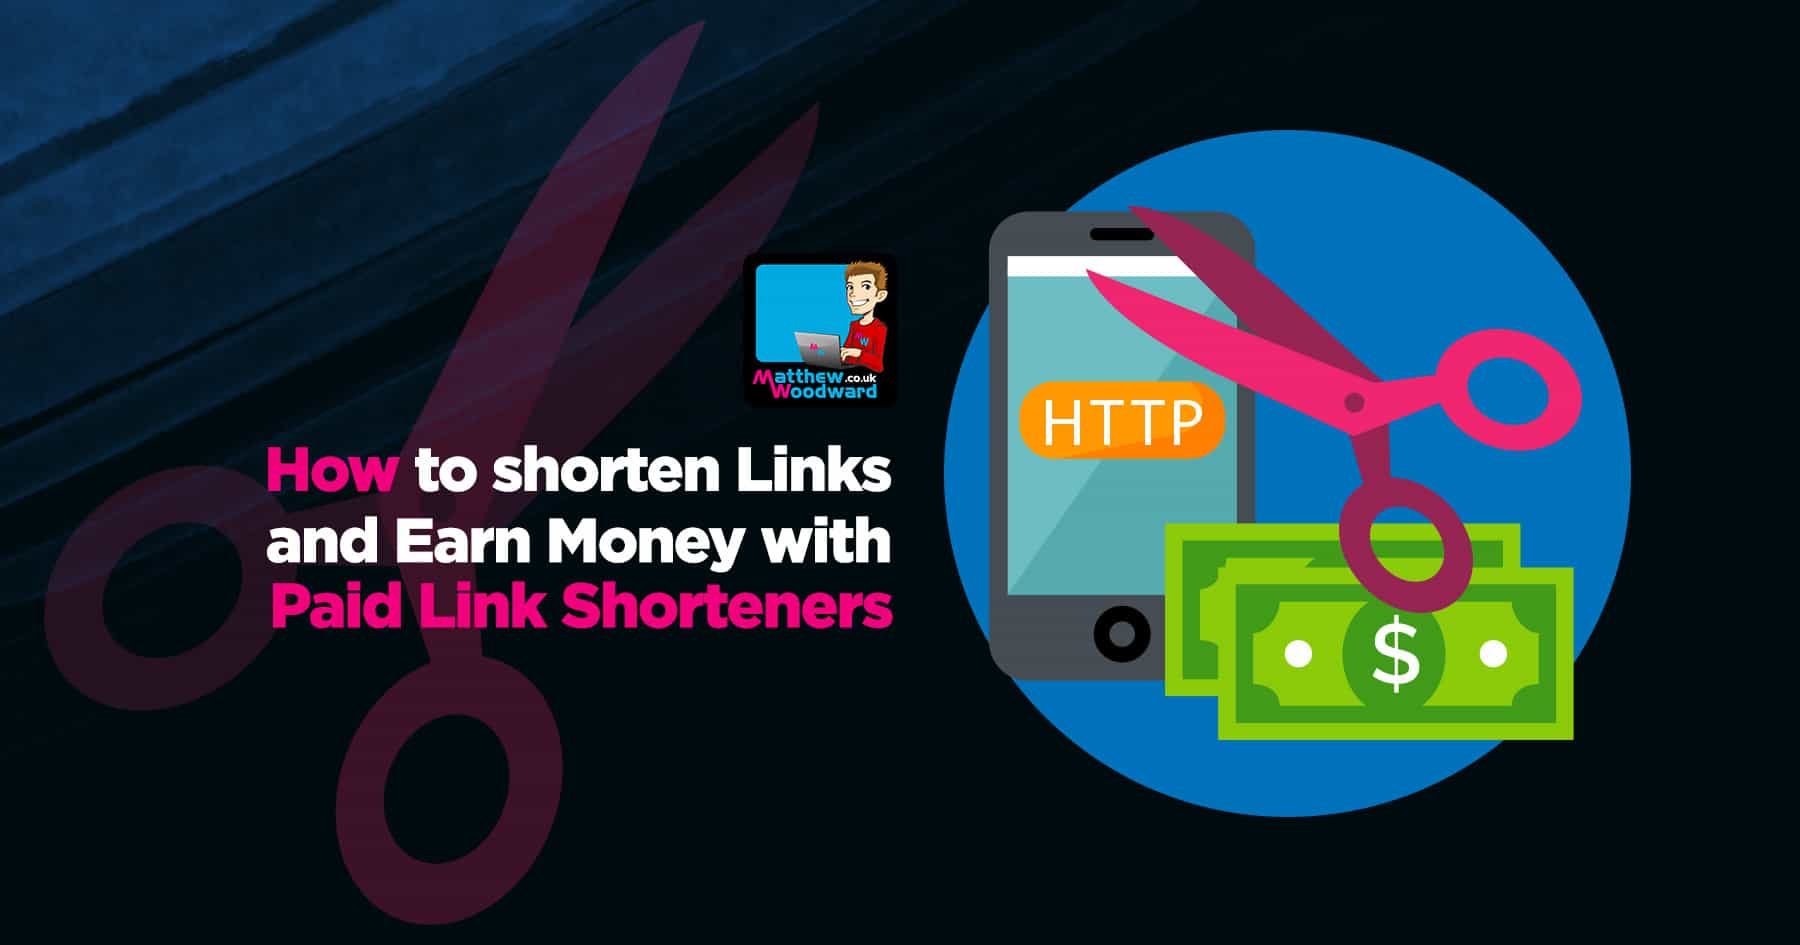 How To Shorten Links And Earn Money With Paid Link